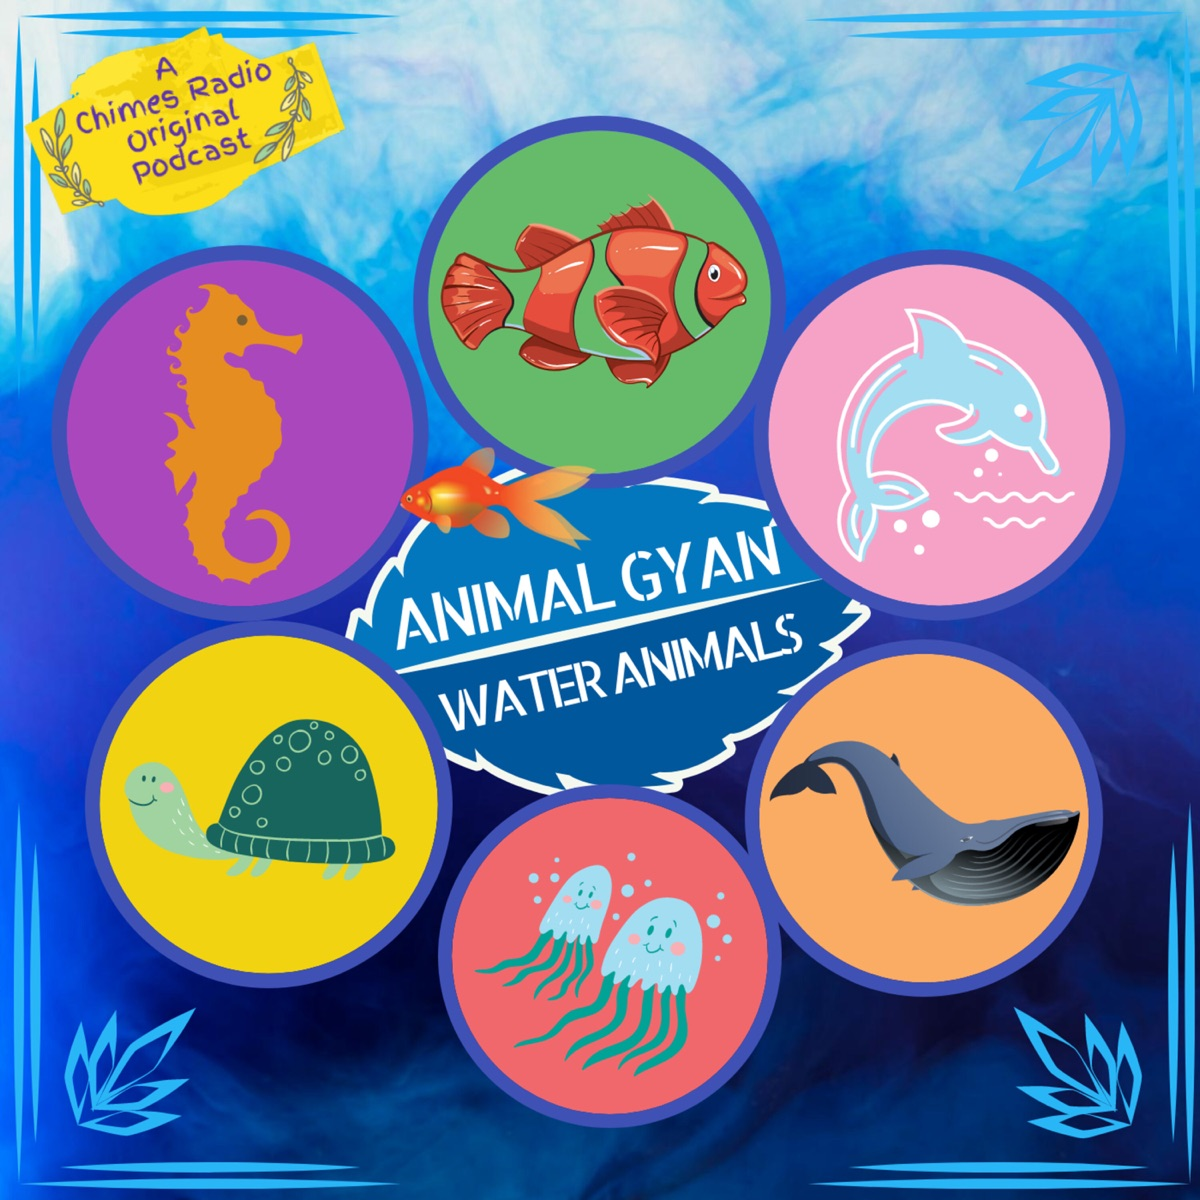 Animal Gyan - Water Animals